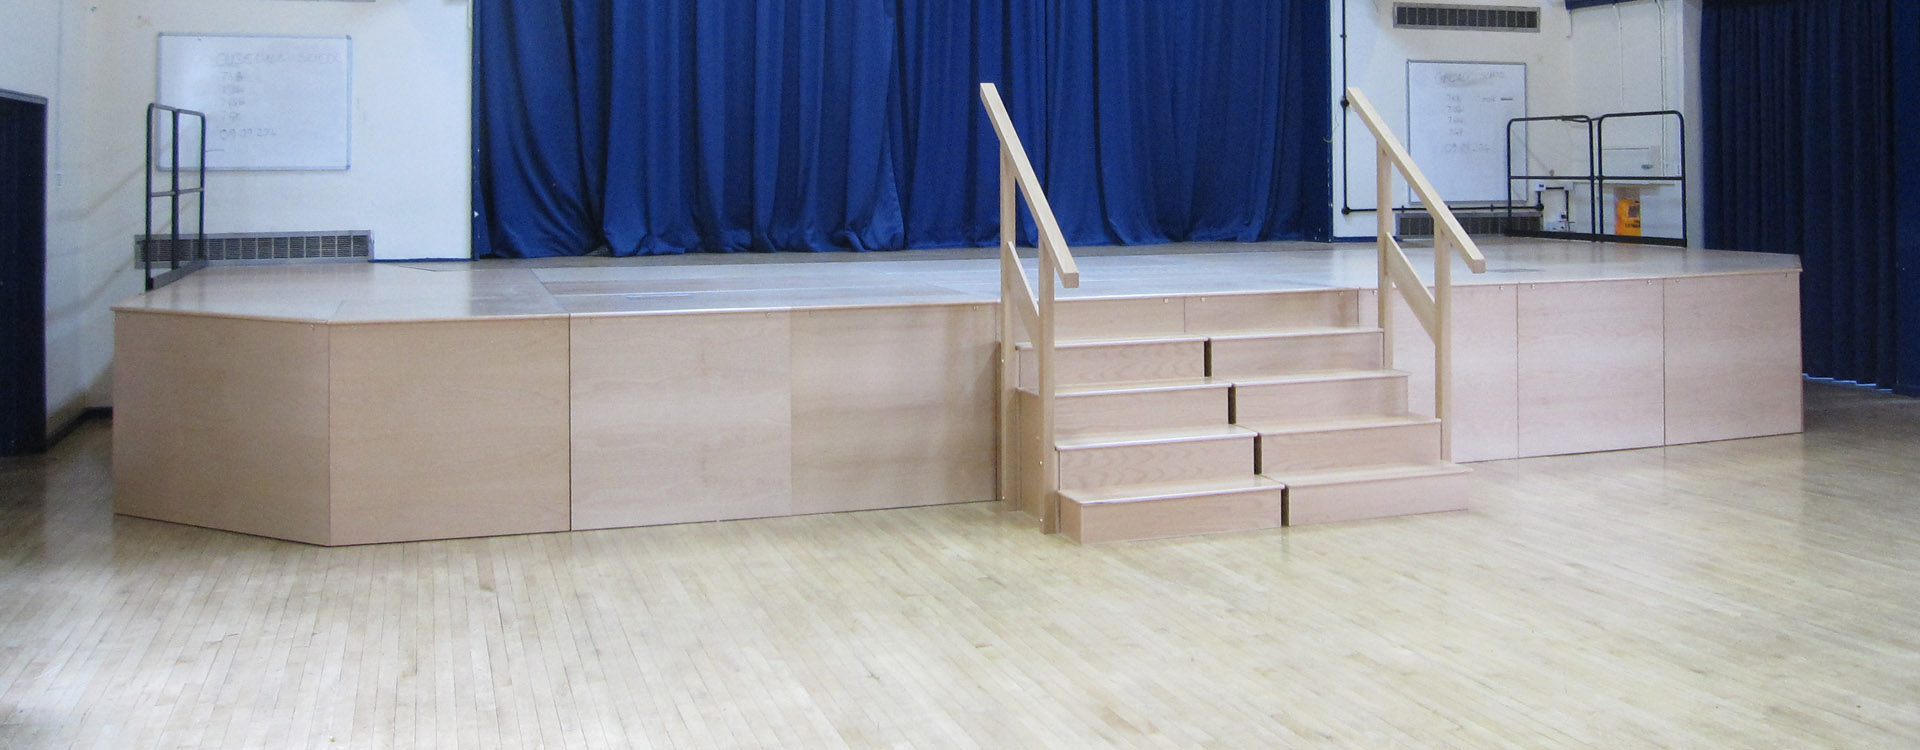 School Staging